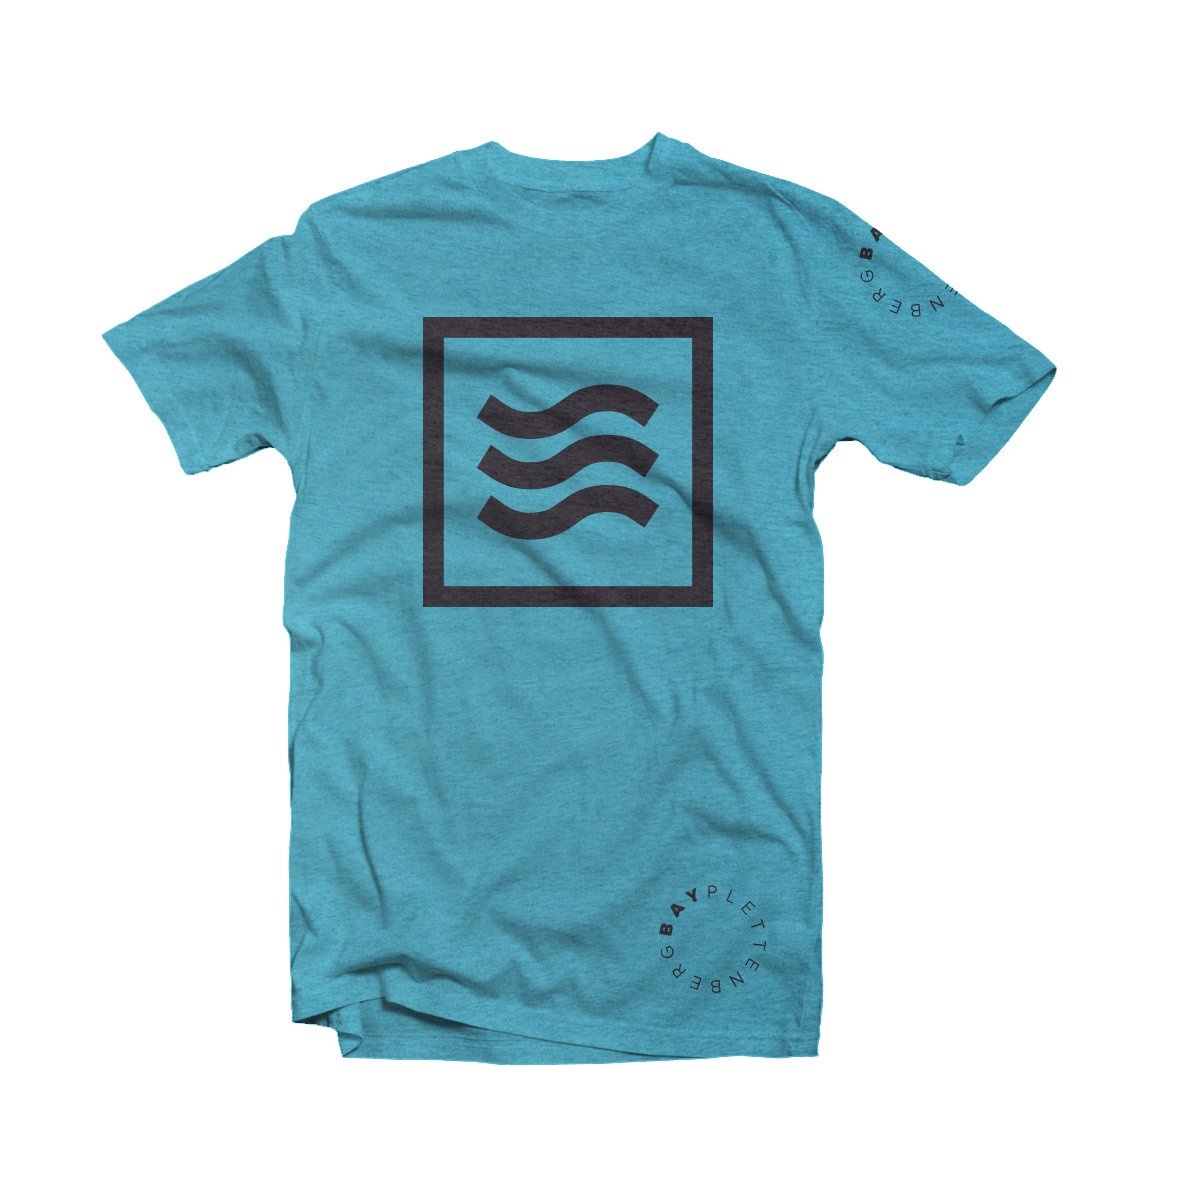 Surfing Life Blue and Black Plettenberg Bay T-shirt Image